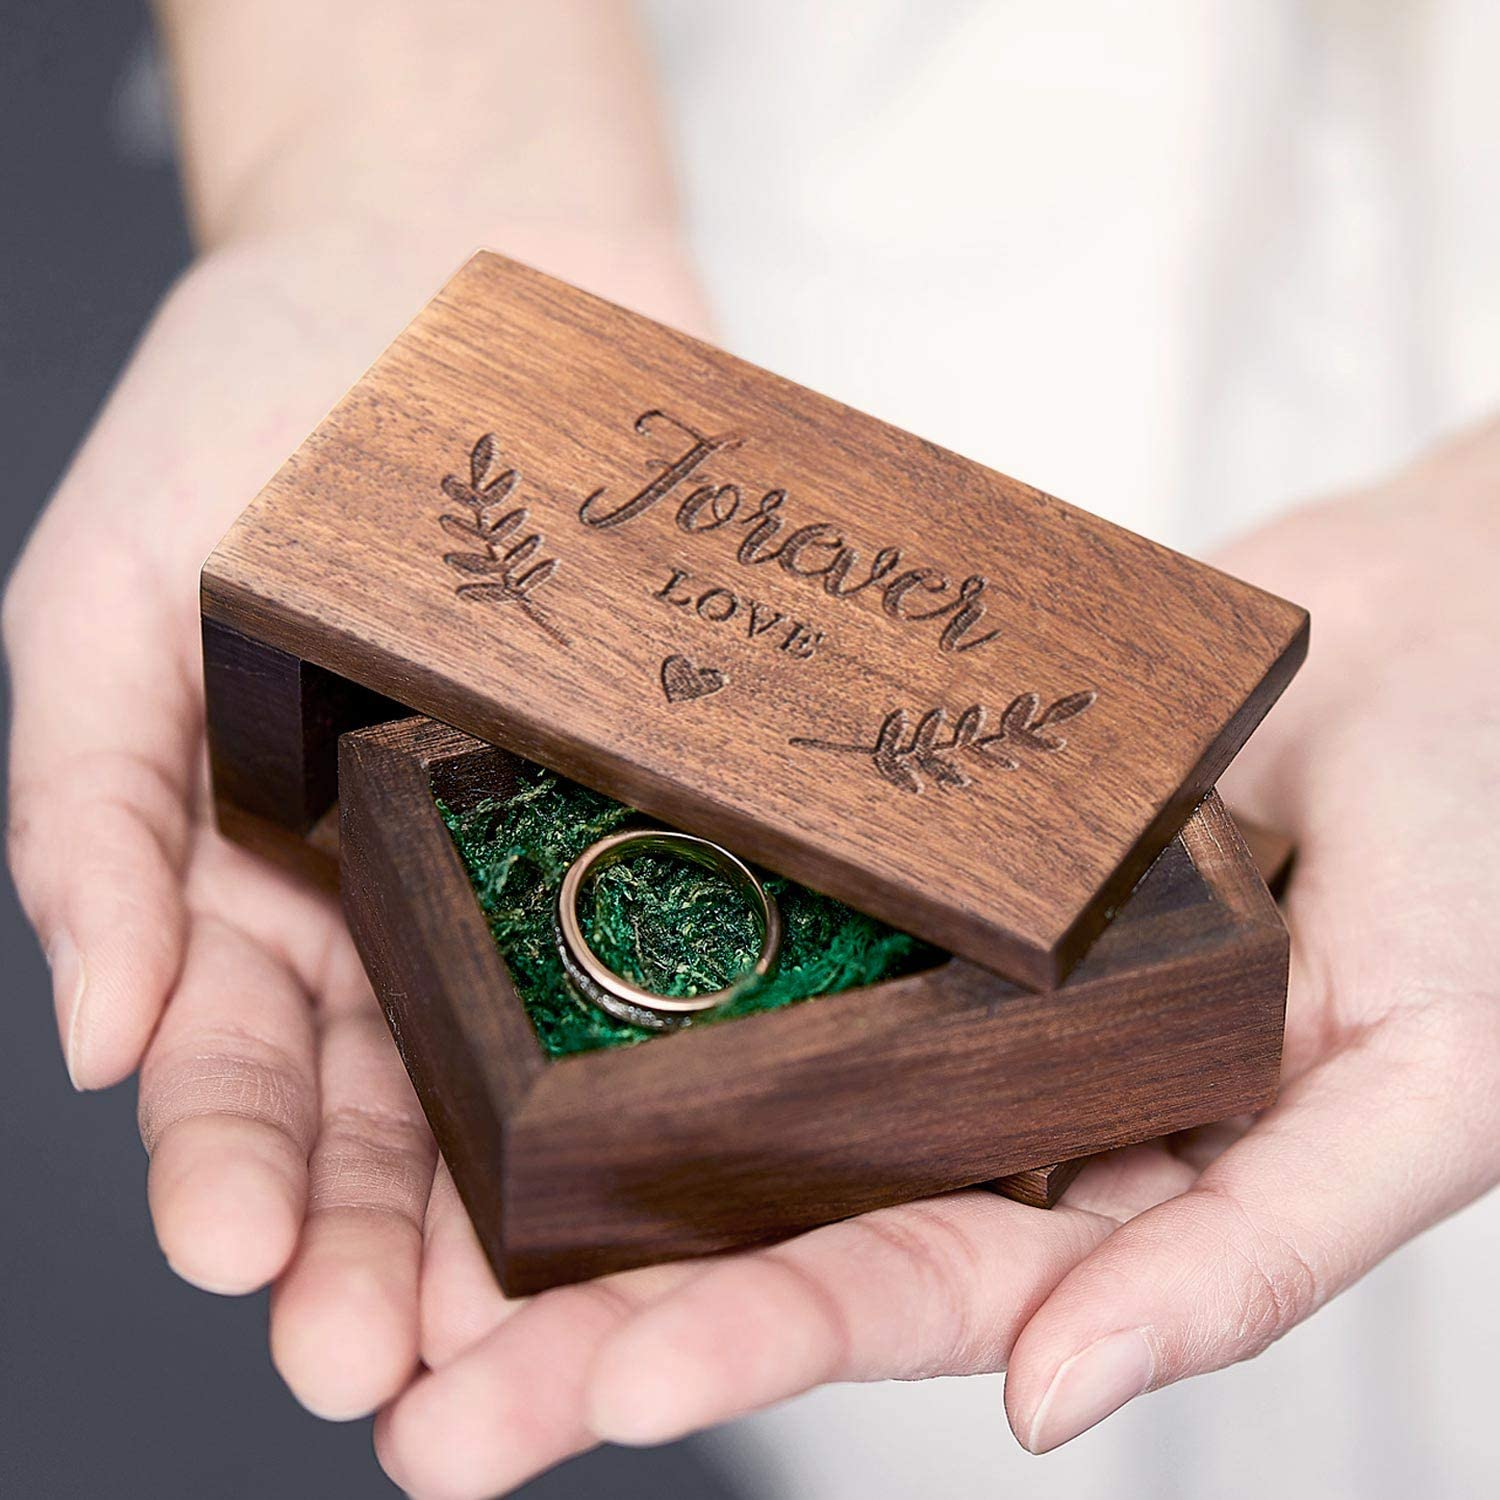 AW BRIDAL Wooden Wedding Ring Box Vintage Engraving Ring Bearer Pillow Box Rustic Engagement Ring Holder Decor Gift for Wedding Ceremony